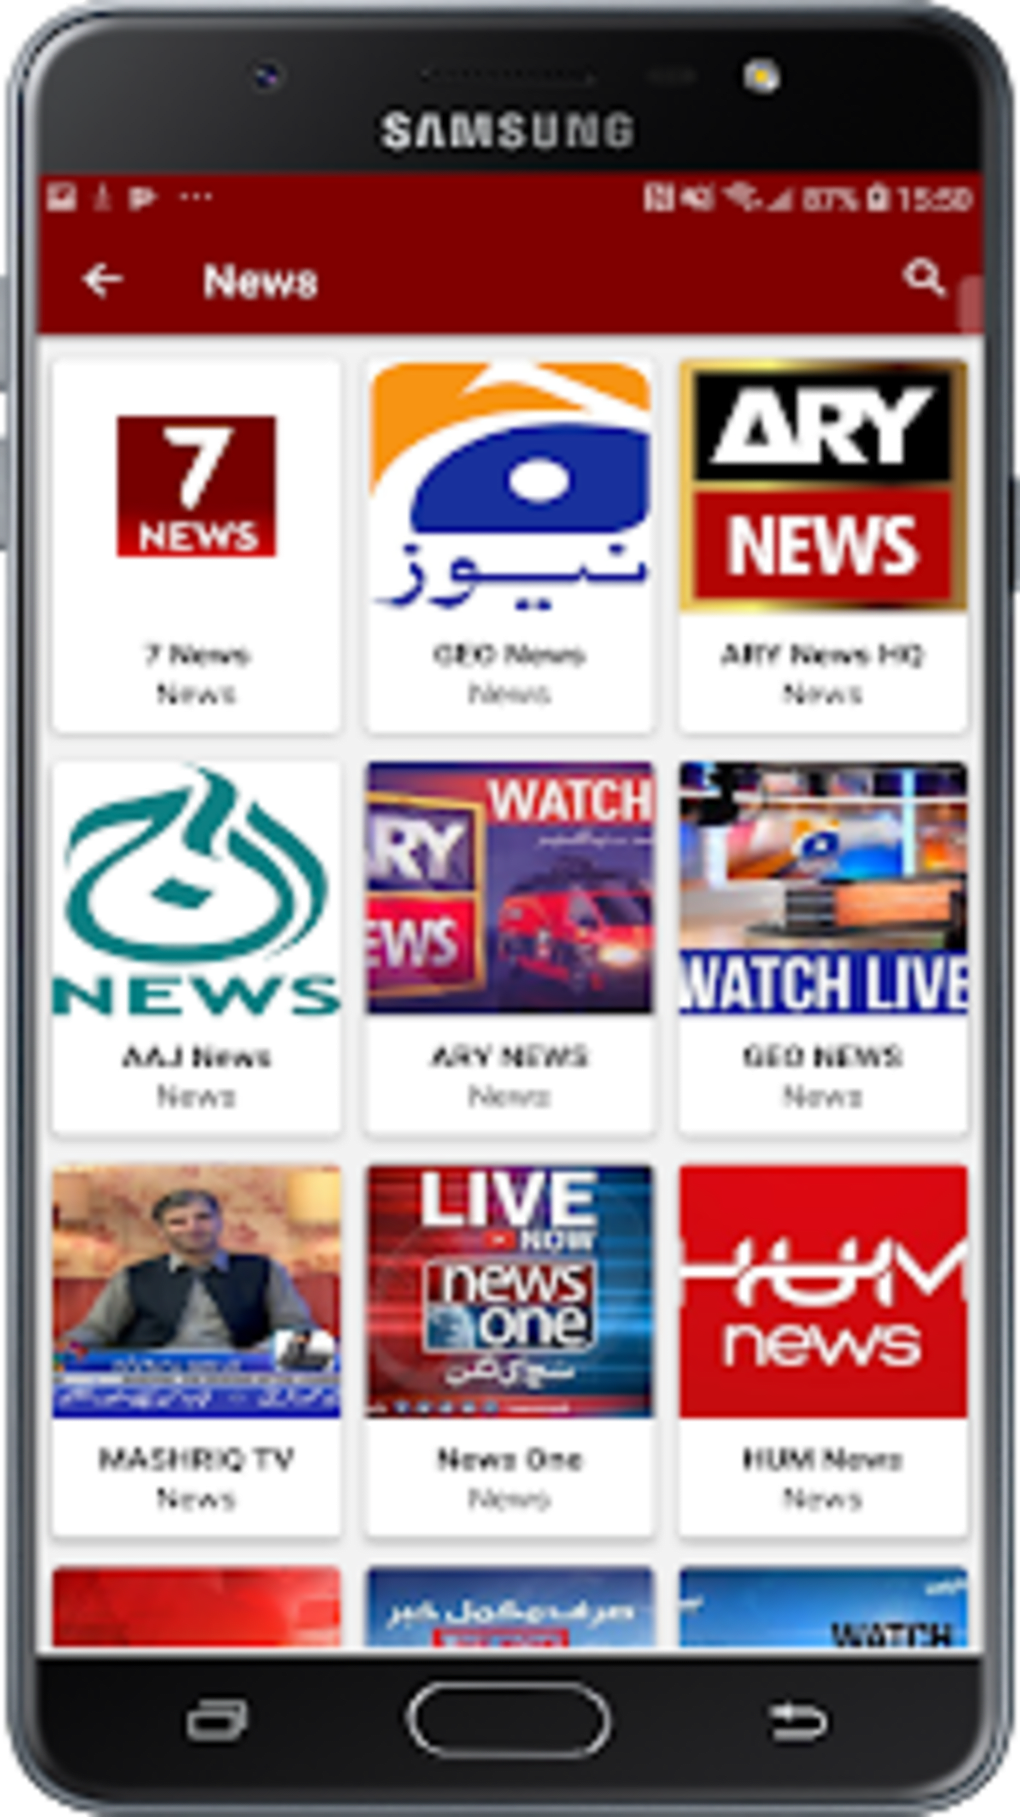 Pak Live Tv: Live TV News PTV Sports GEO Super for Android - Download